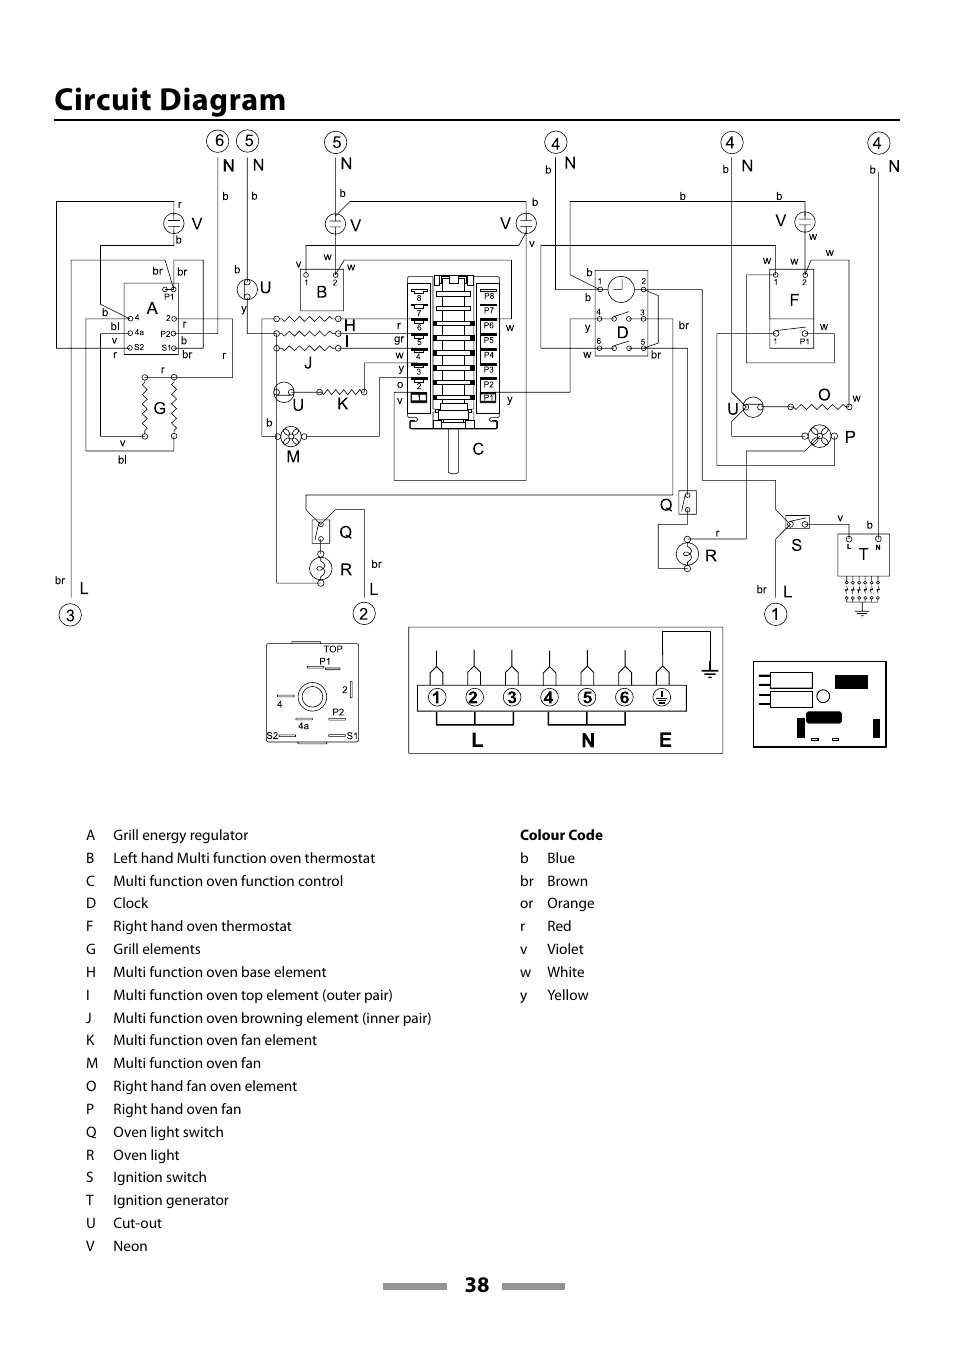 Circuit diagram | Rangemaster 110 DUAL FUEL U109600-02 User Manual | Page  38 / 40